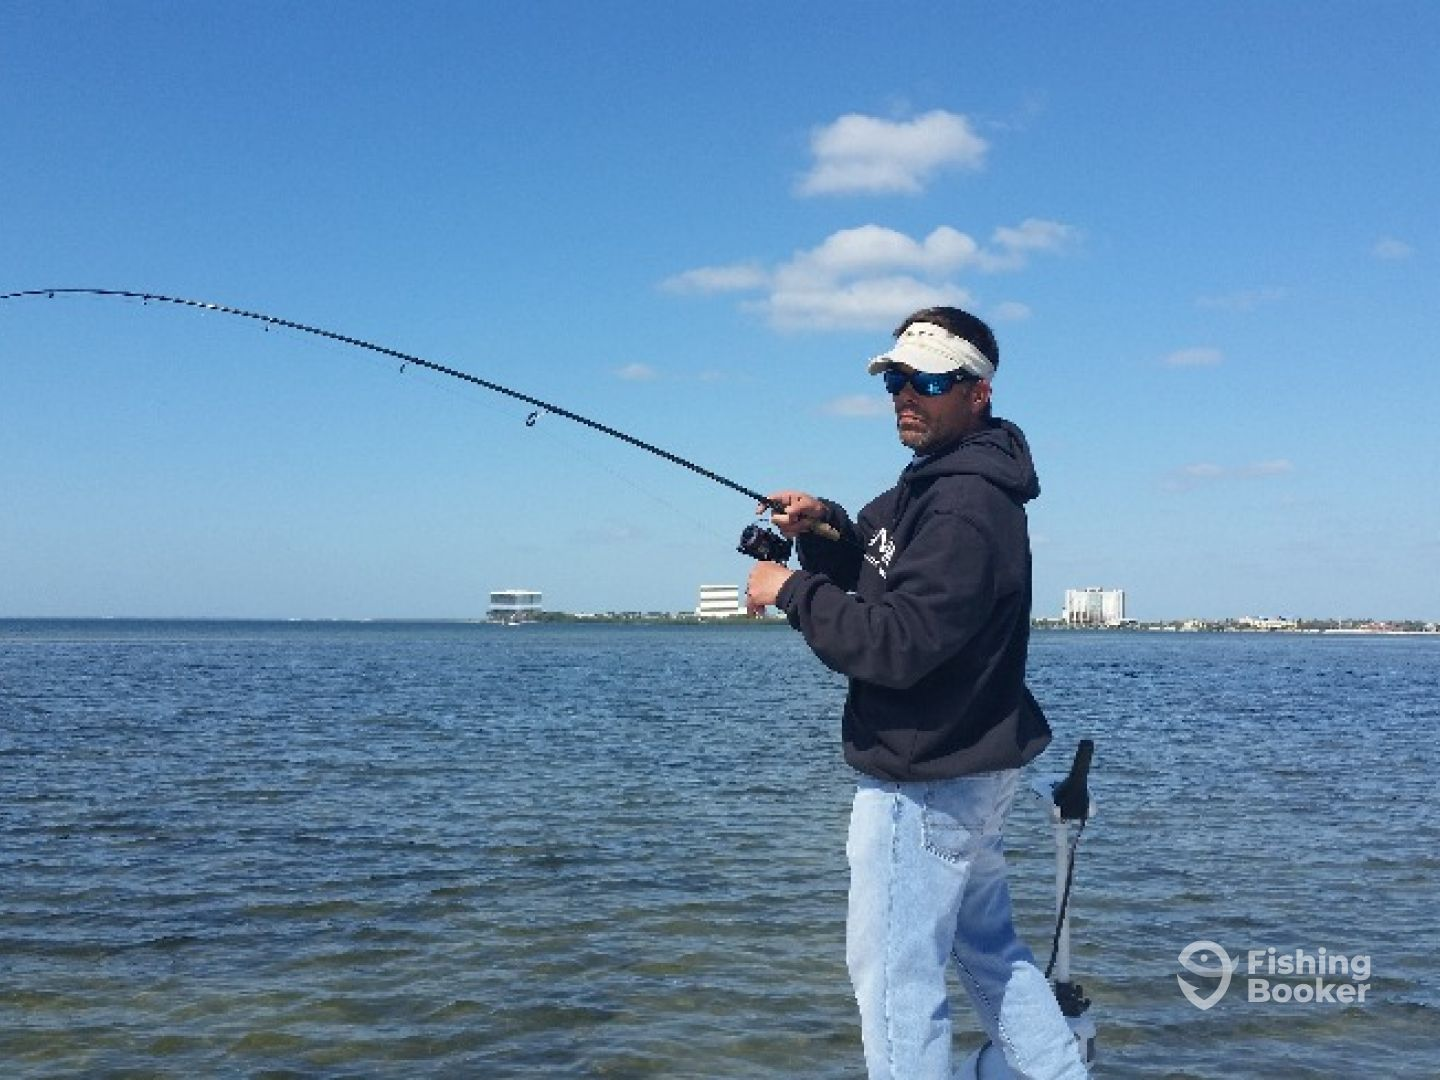 Red fin addict inshore charters englewood fl fishingbooker for Fishing charters englewood fl